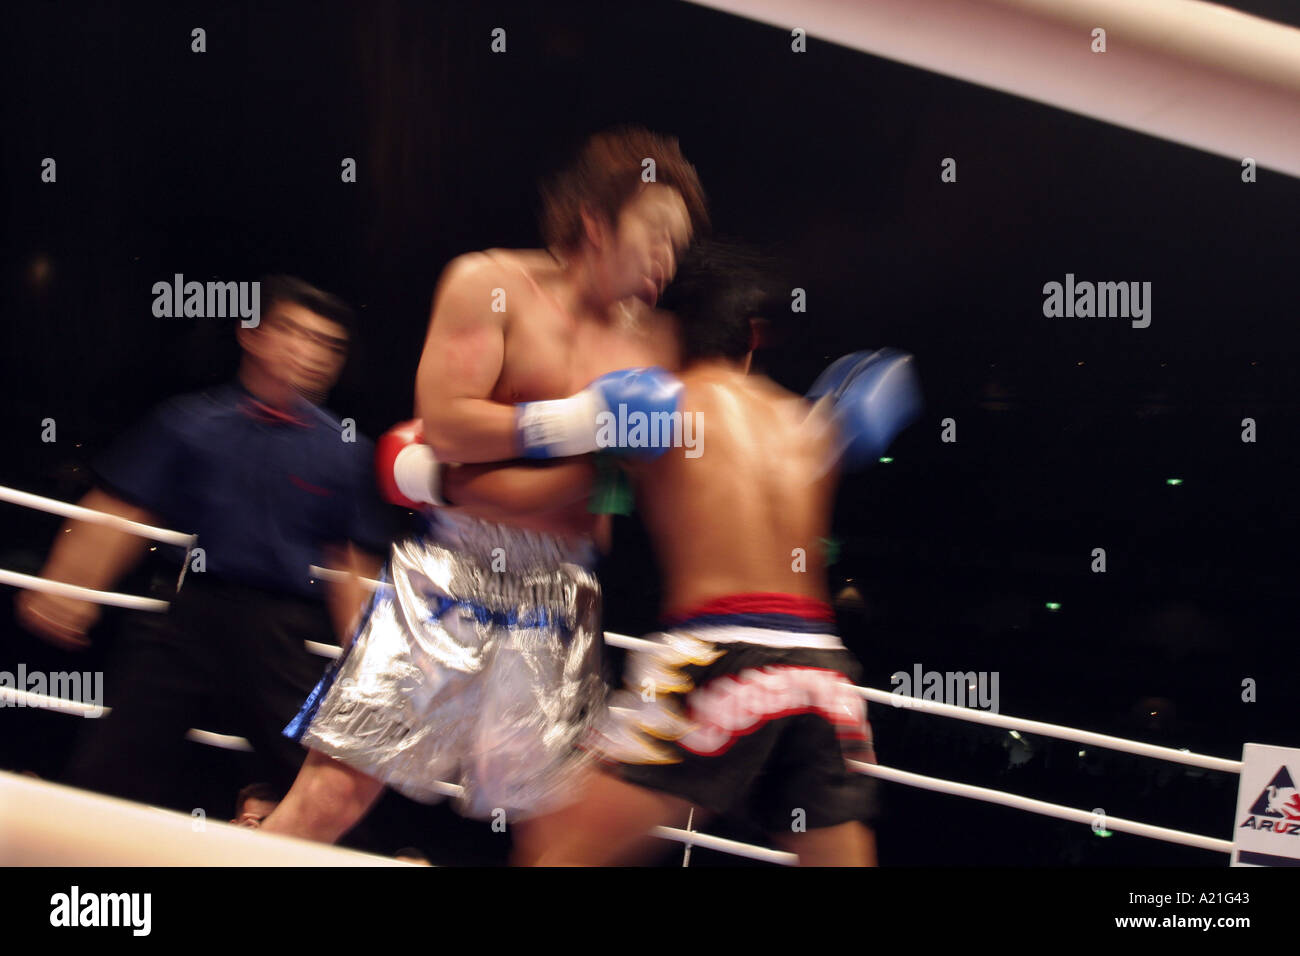 K-1 kick boxing fighters in the heat of a round, K1